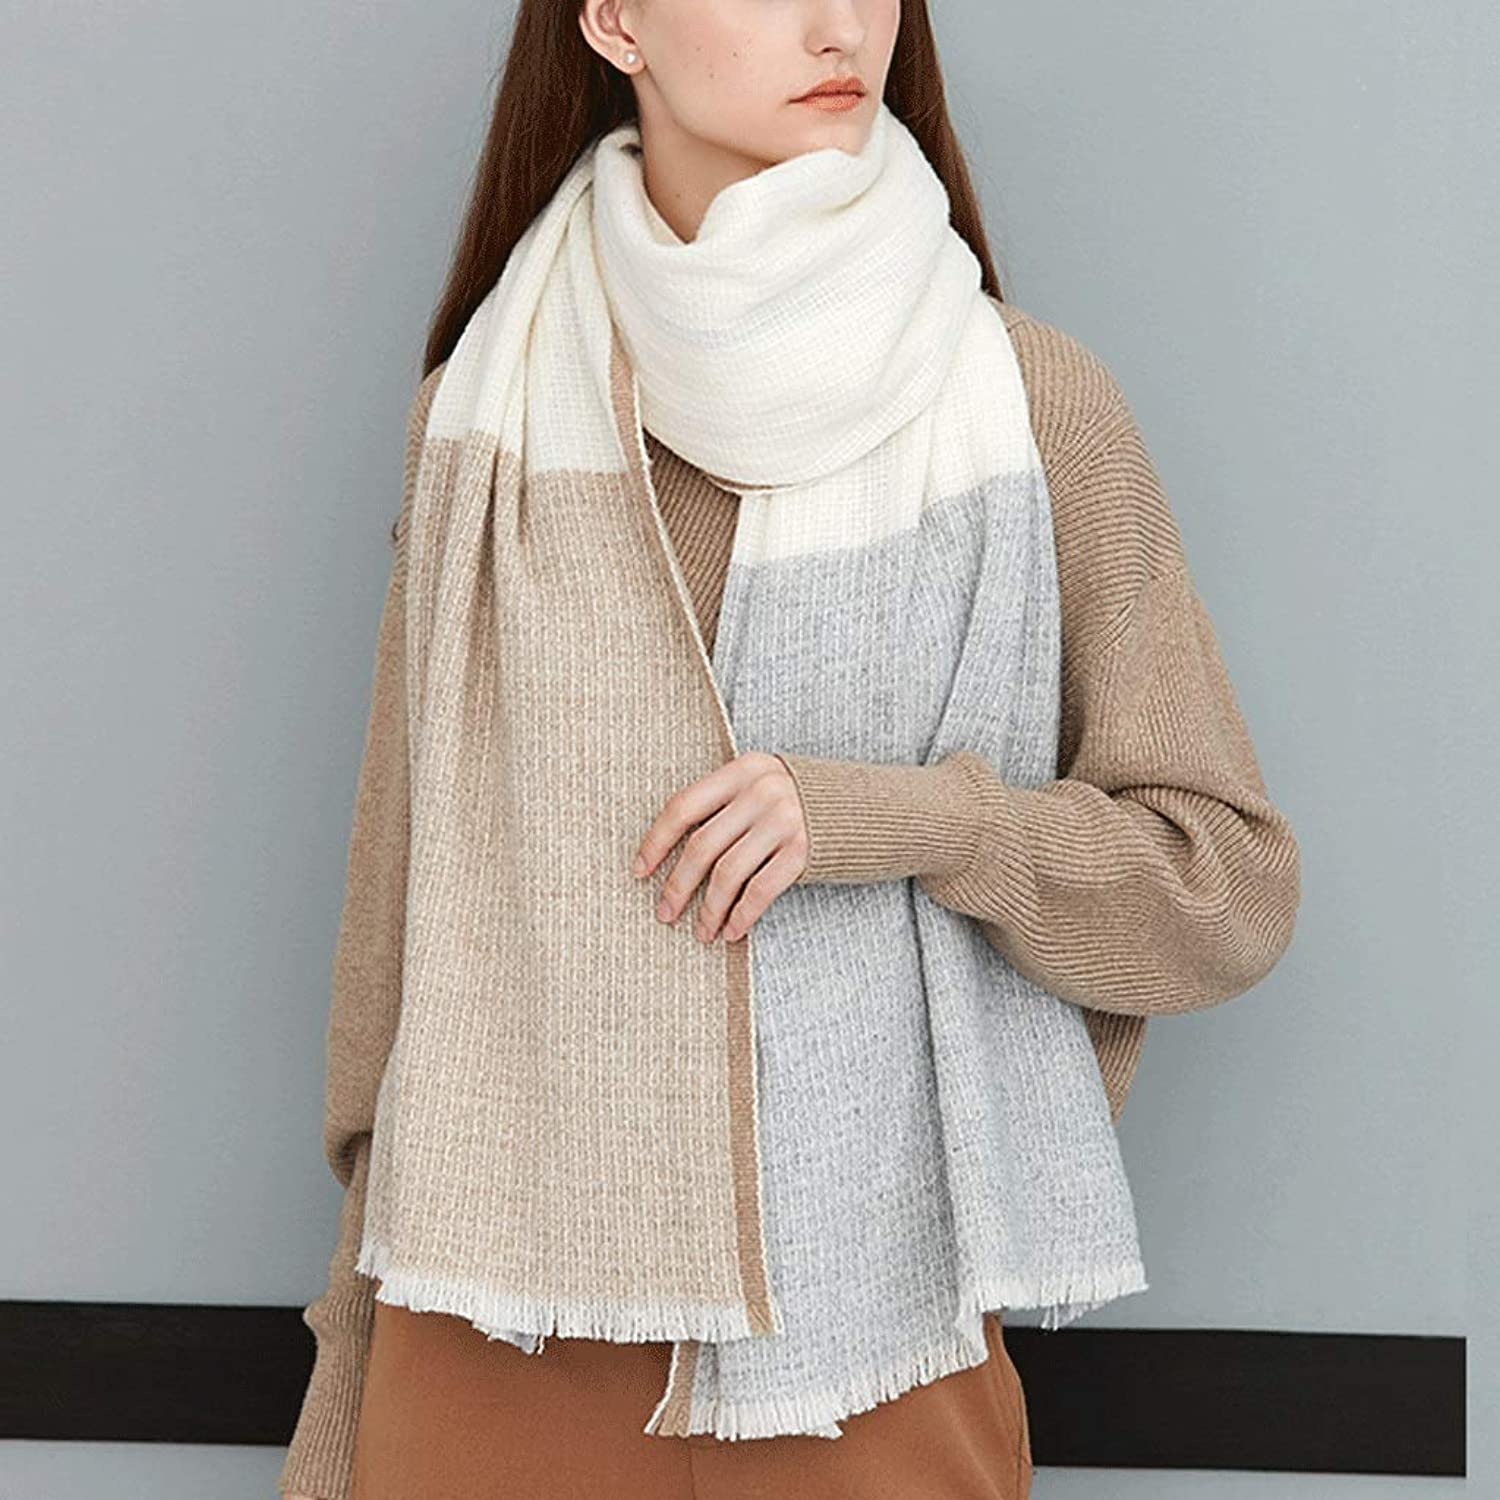 CHX Warm Scarf Woman Mixed colors Thicken Soft Shawl Large Size 200cm×65cm V (color   C)